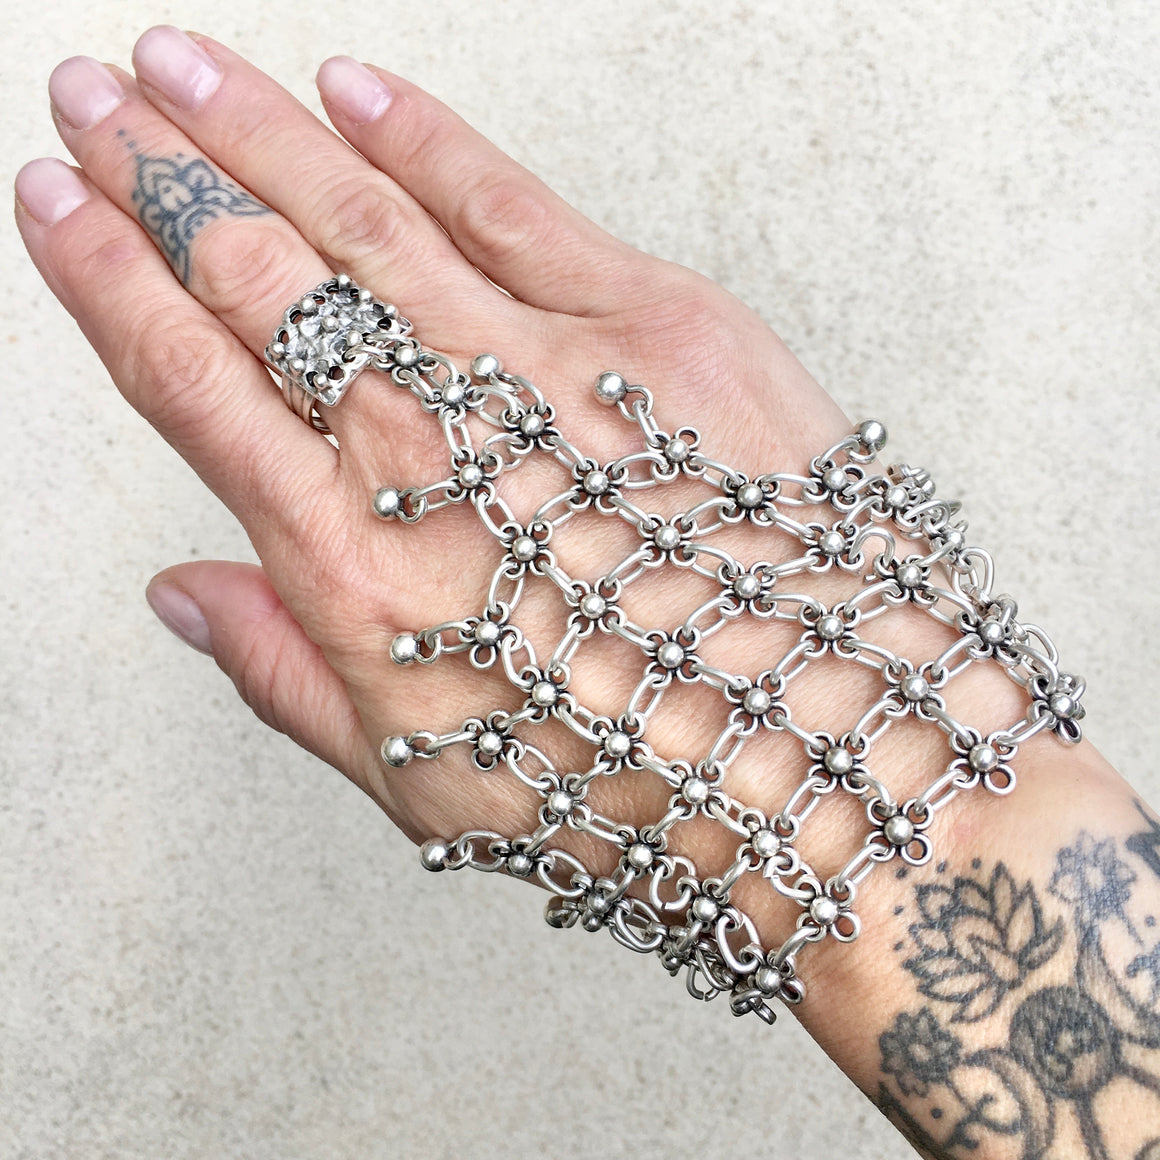 Sage Boho Chain Mail Ring and Hand Bracelet, Ring Bracelet Cuff - KITTY KAT,